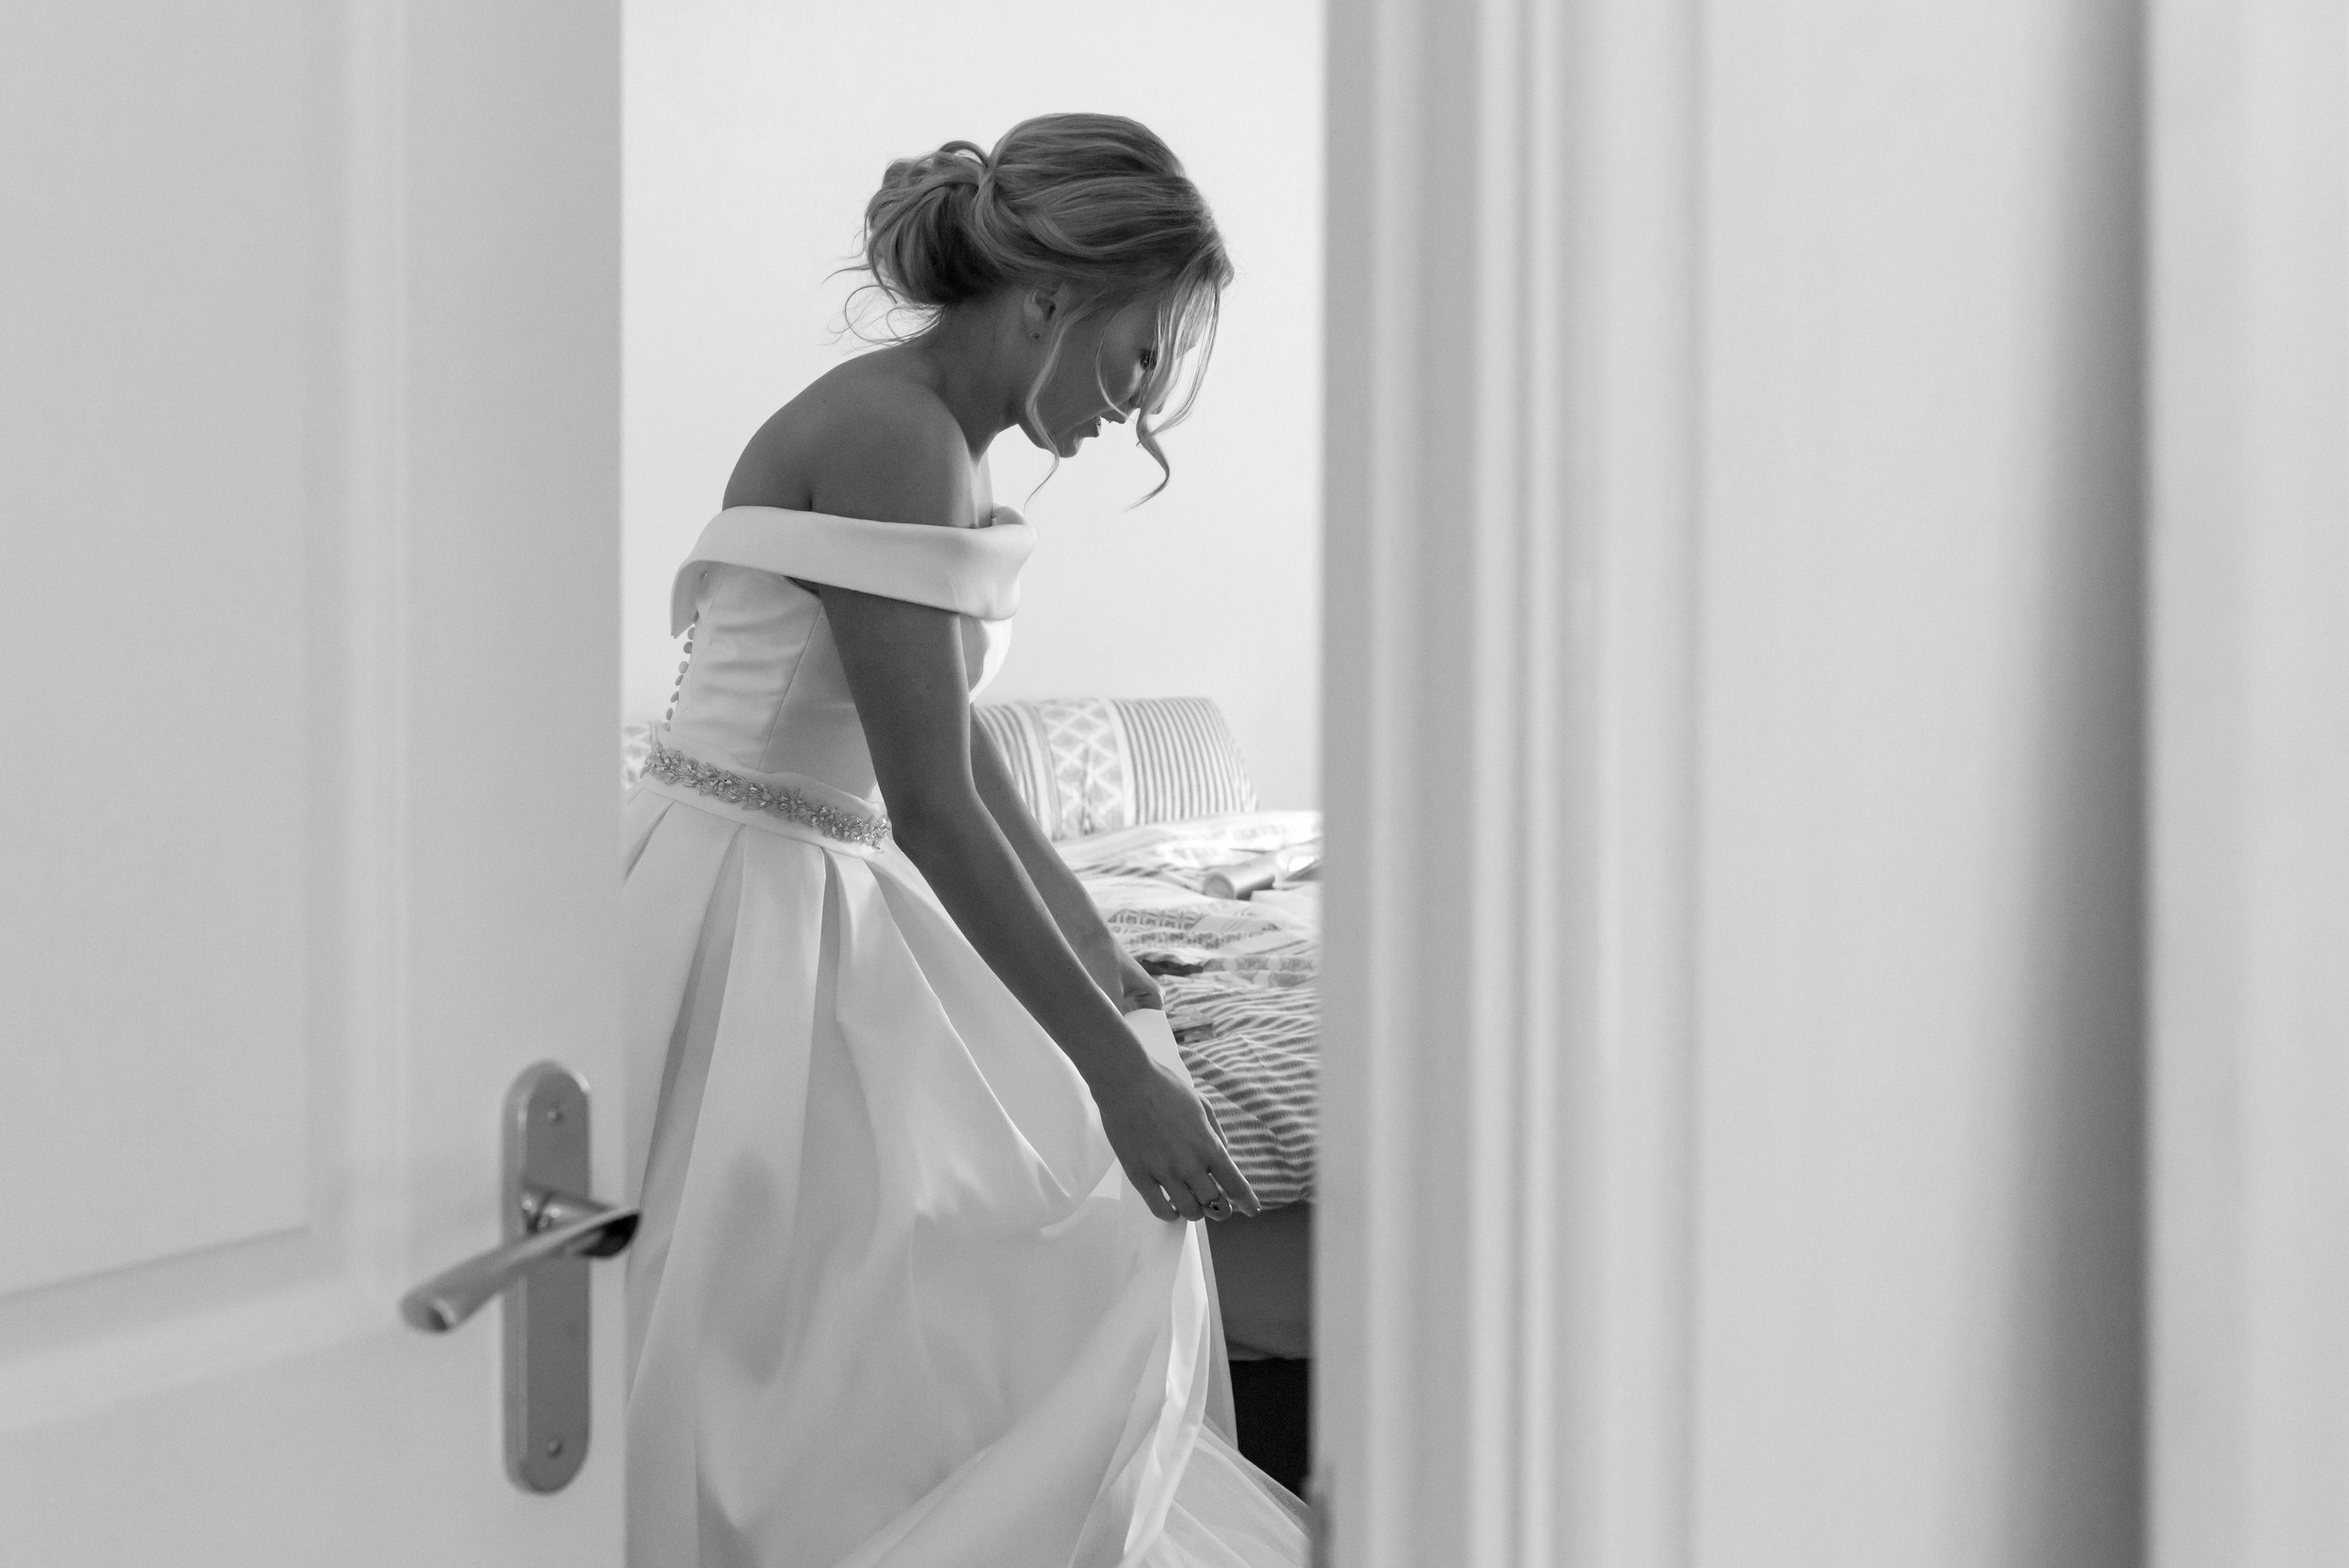 Black and white monochrome image of bride putting on wedding dress in bedroom during bridal preparations on morning of wedding day